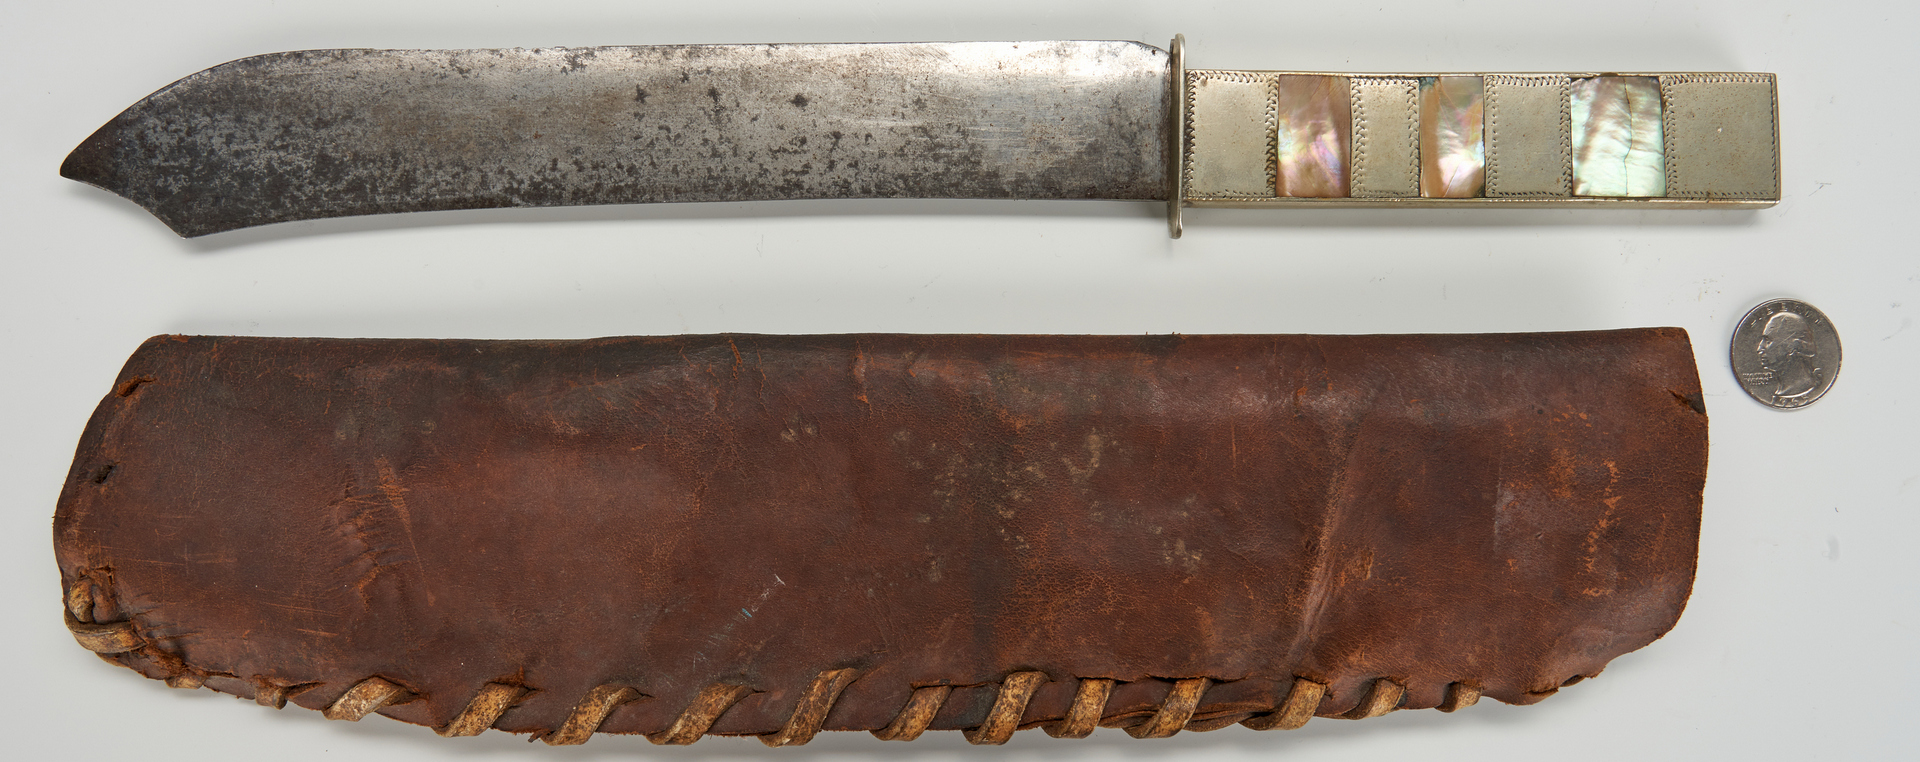 Lot 612: Abalone Handle Knife with Leather Sheath, with provenance